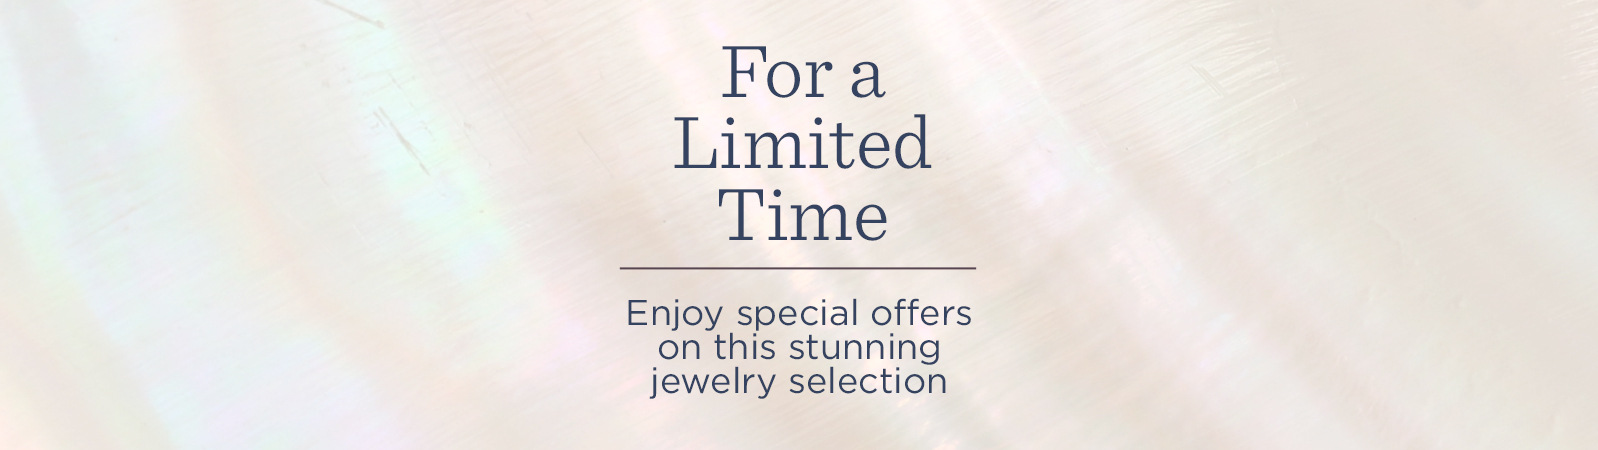 For a Limited Time.  Enjoy special offers on this stunning jewelry selection.